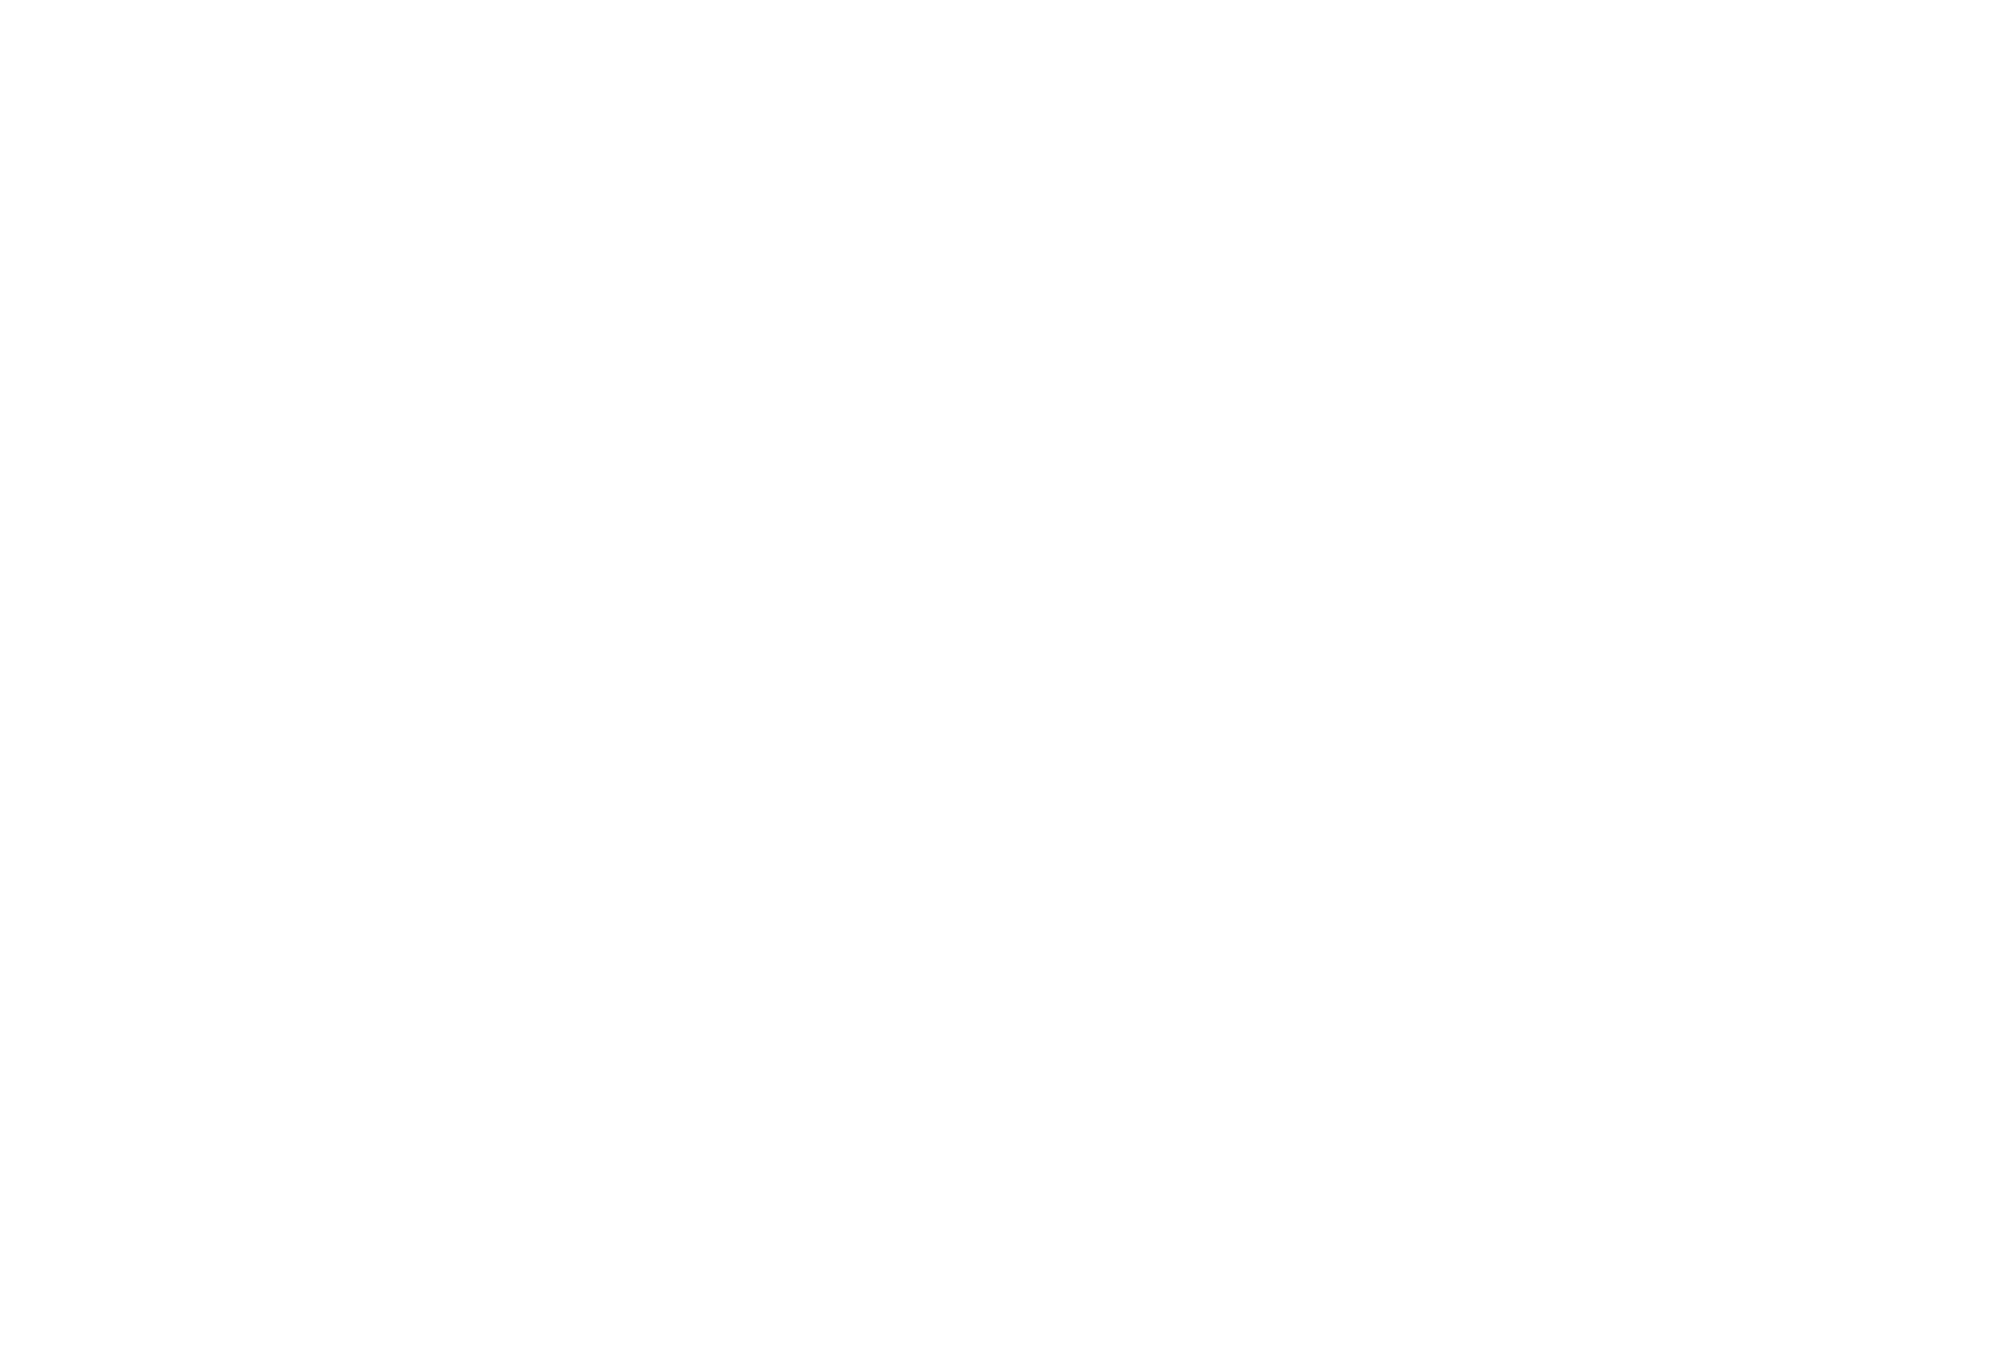 Solid Rock Fencing